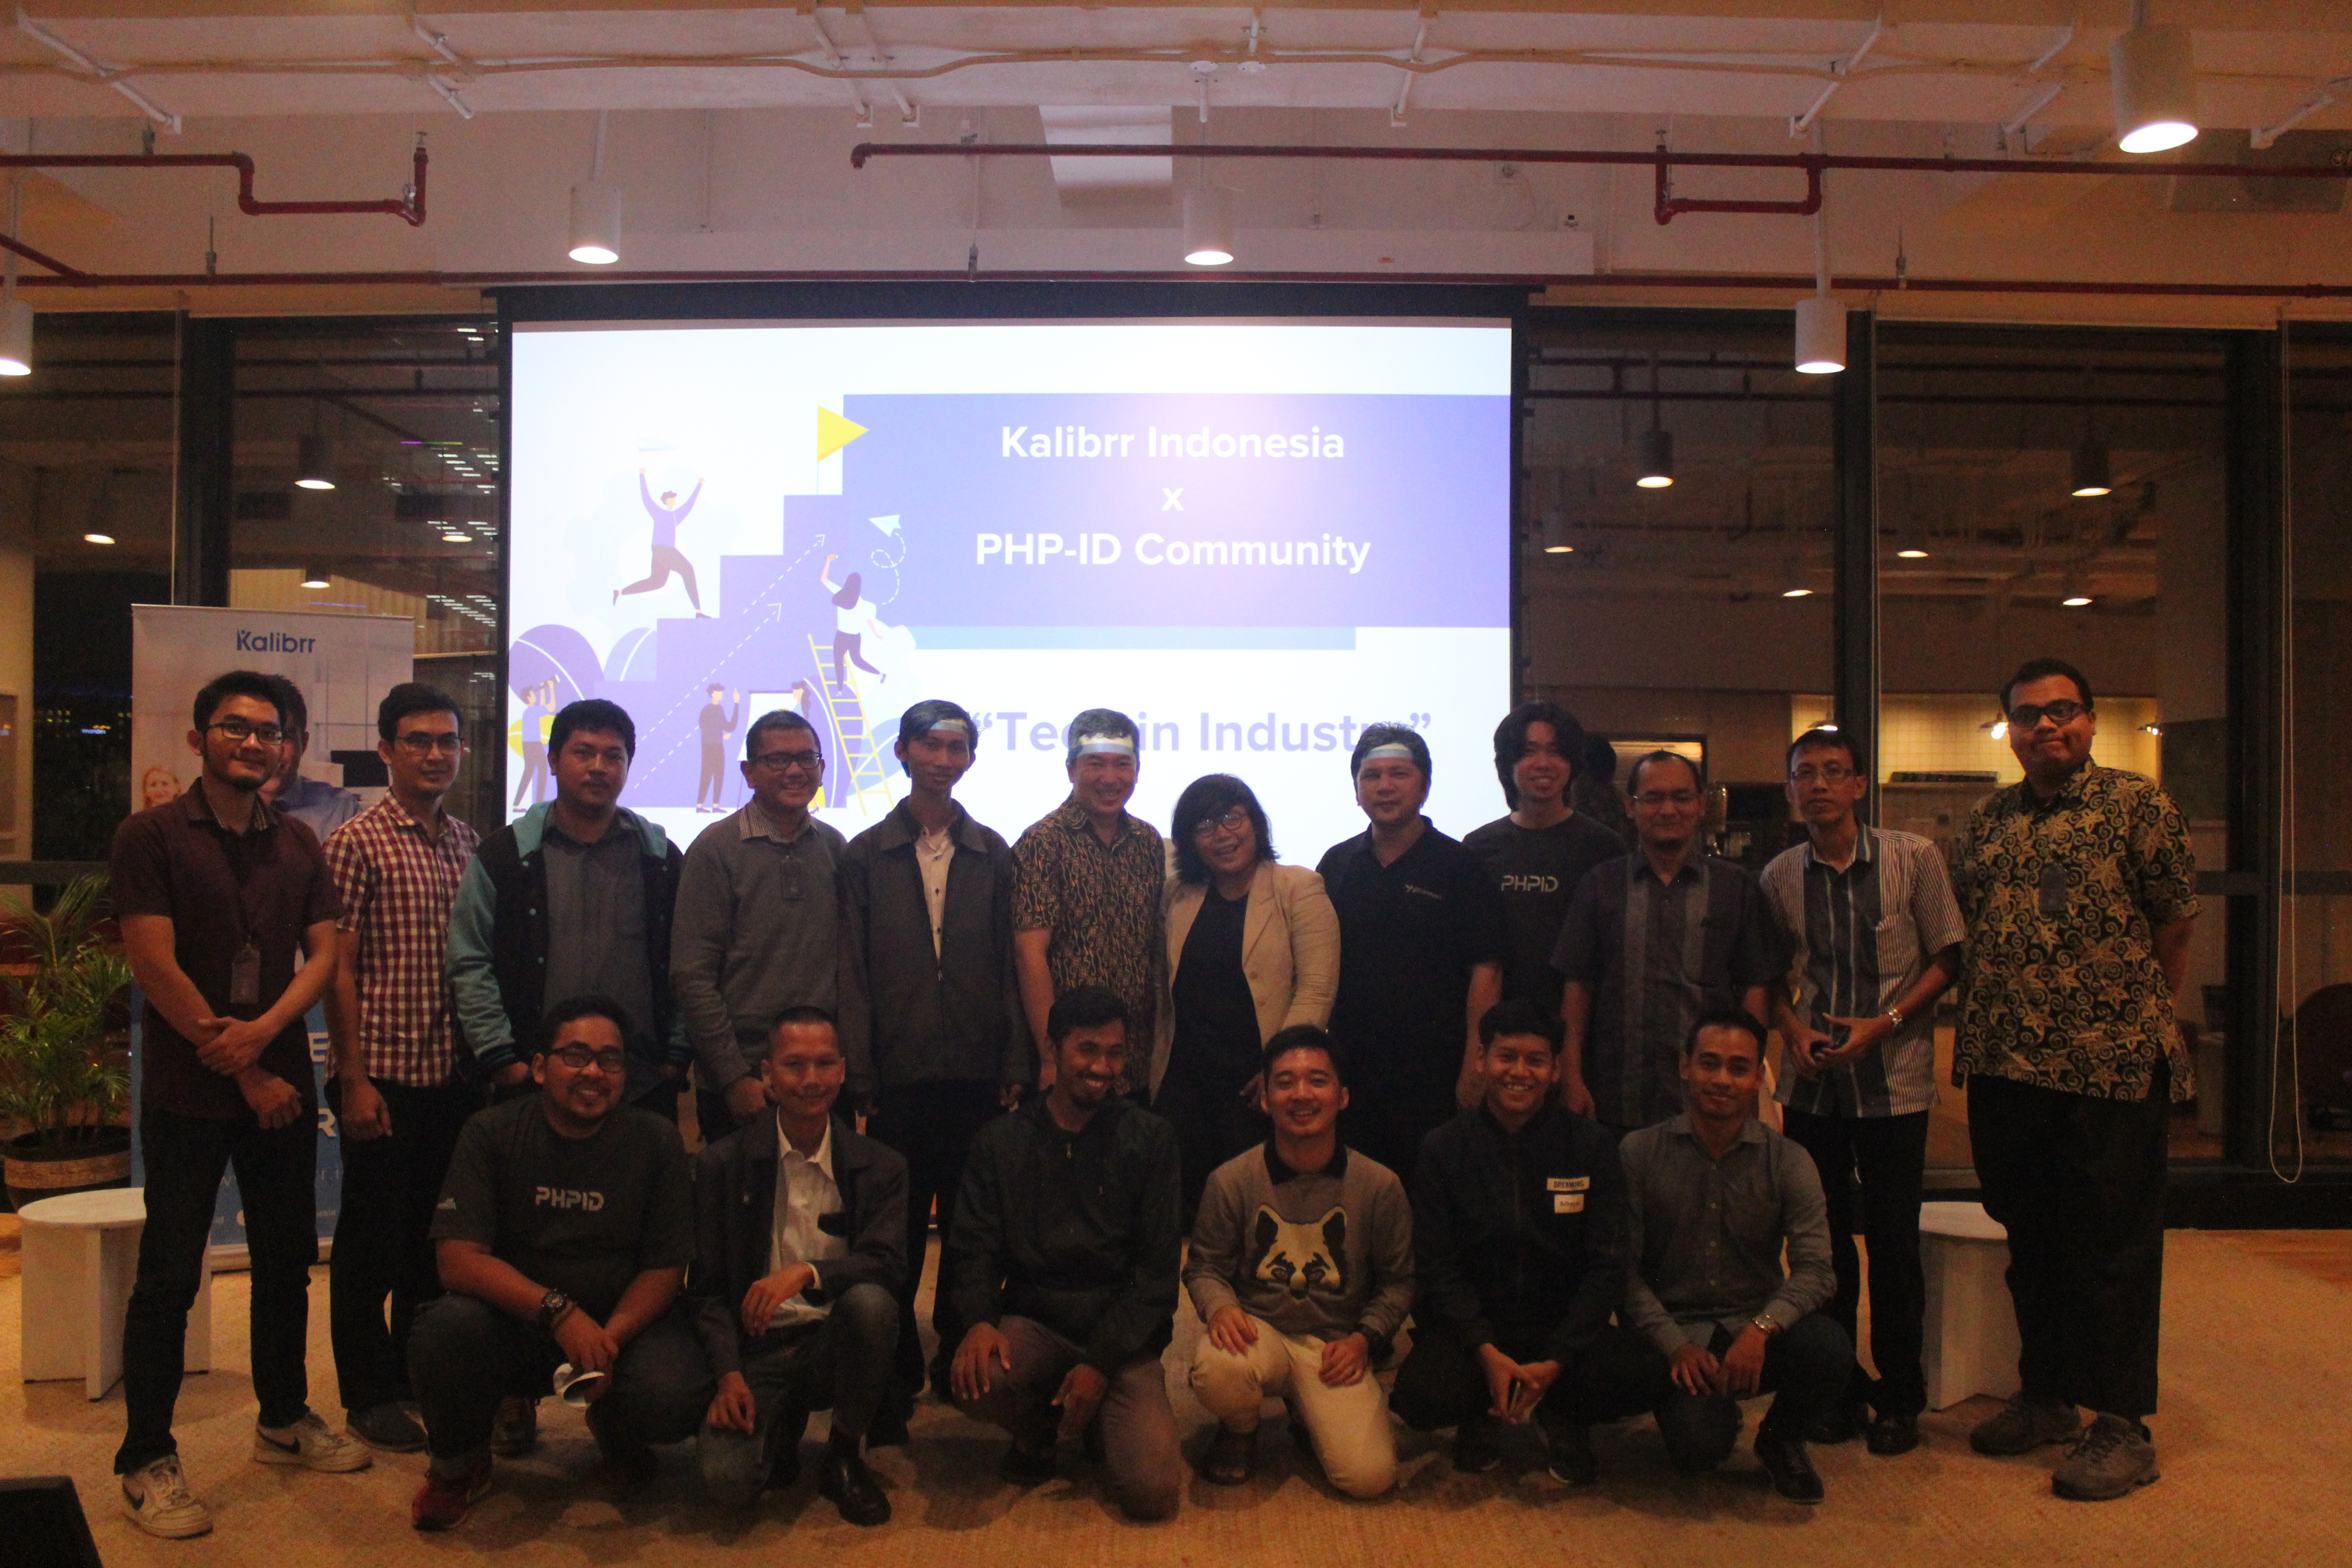 Partisipan dan Pembicara Kalibrr x PHP Indonesia: Tech in Industries